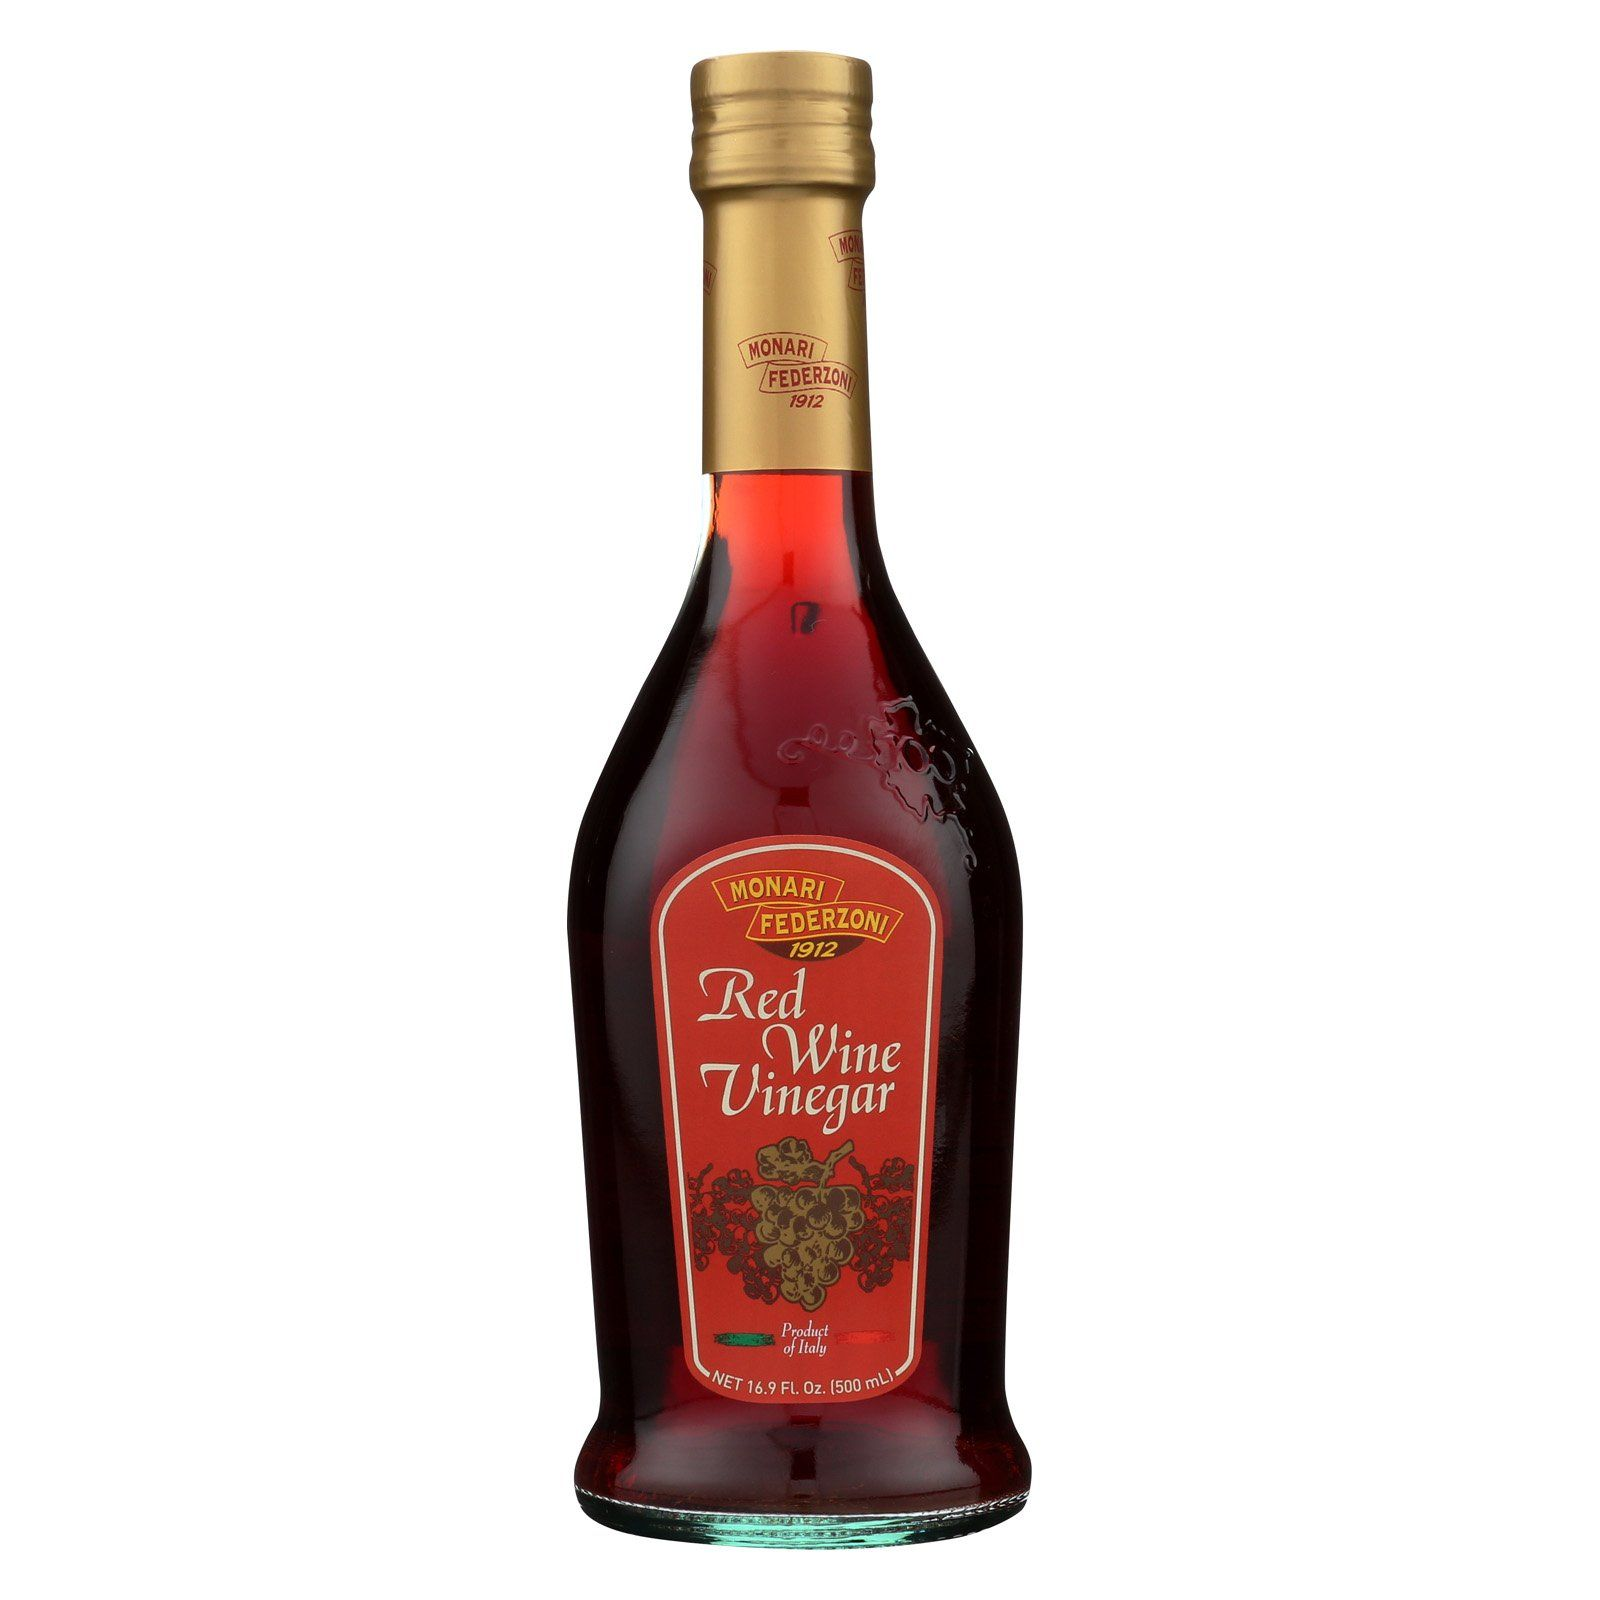 Monari Federzoni Red Wine Vinegar Case Of 616 9 Fl Oz Be Sure To Check Out This Awesome Product This Is An Affiliat Red Wine Vinegar Red Wine Wine Case